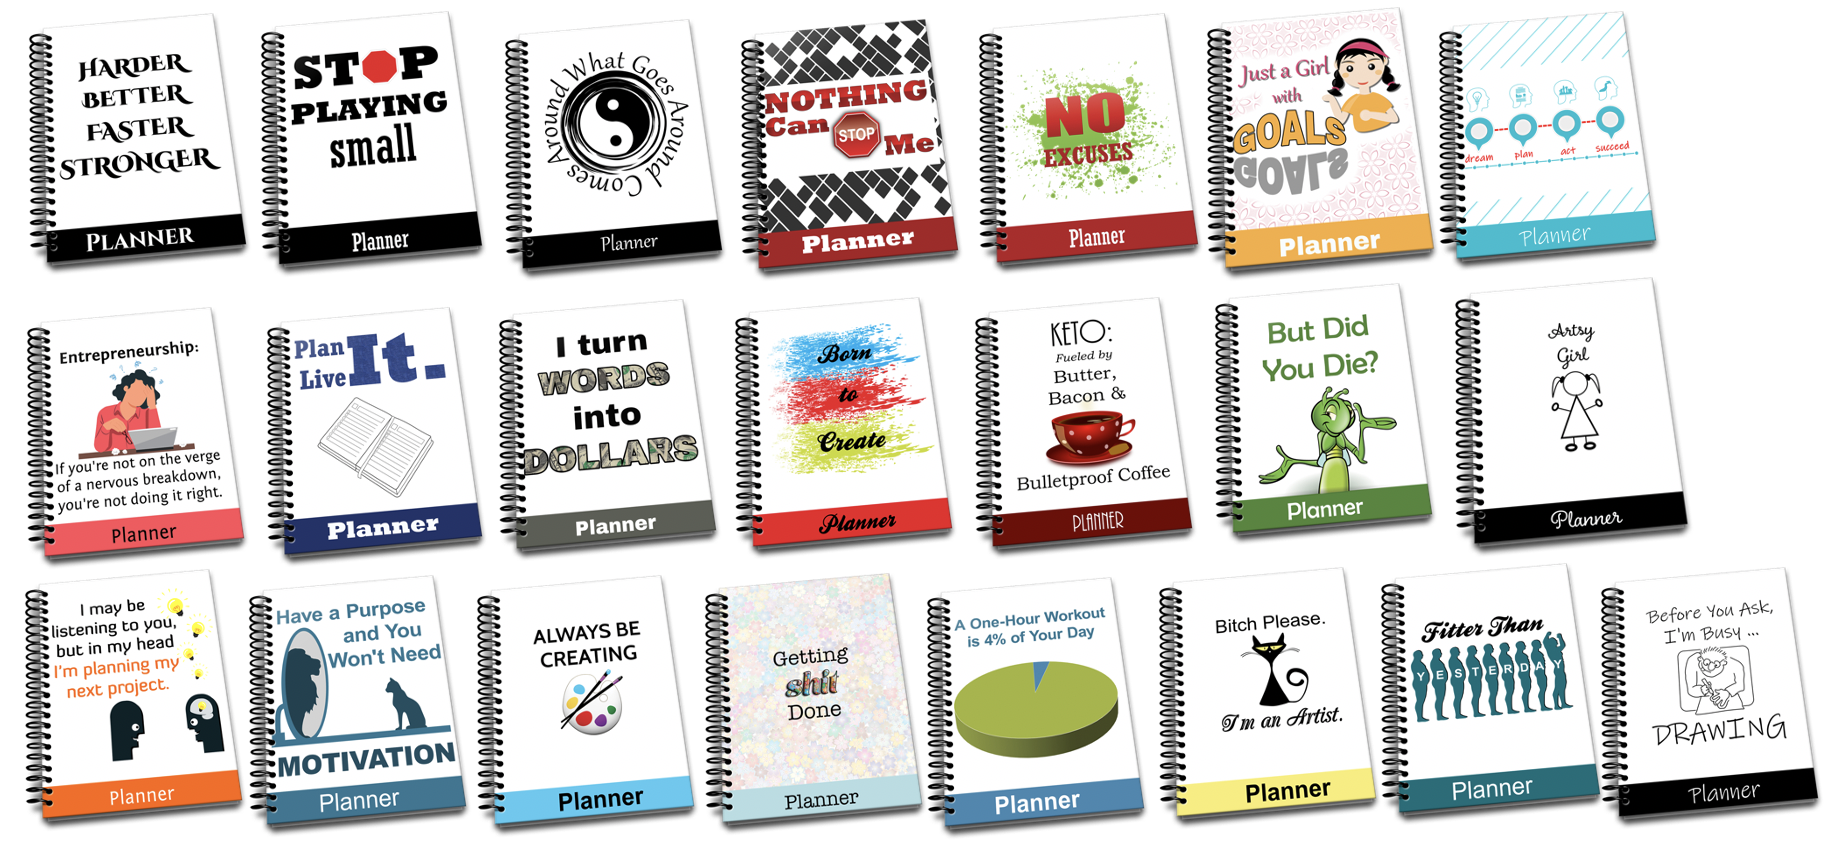 22 Planners with PLR Rights